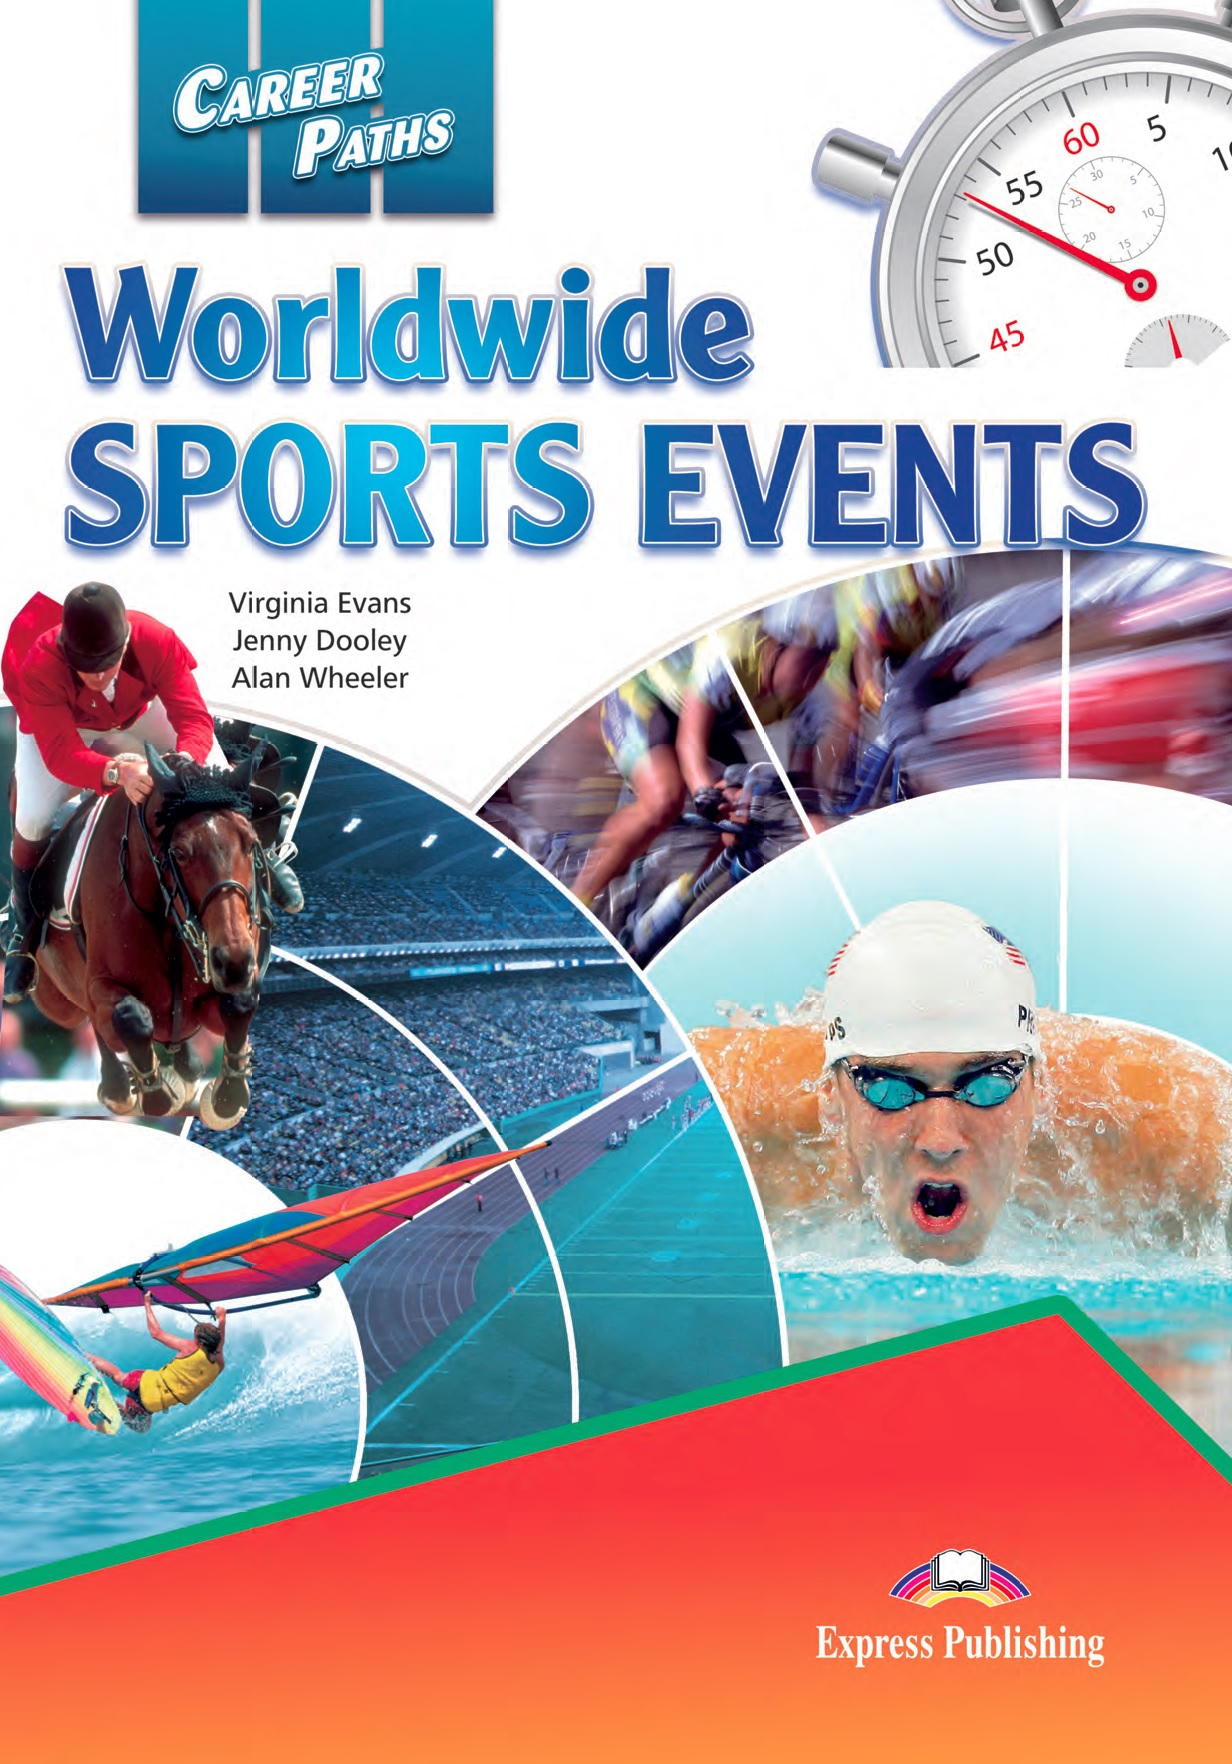 Career Paths Worldwide Sports Events - SB+CD+TB